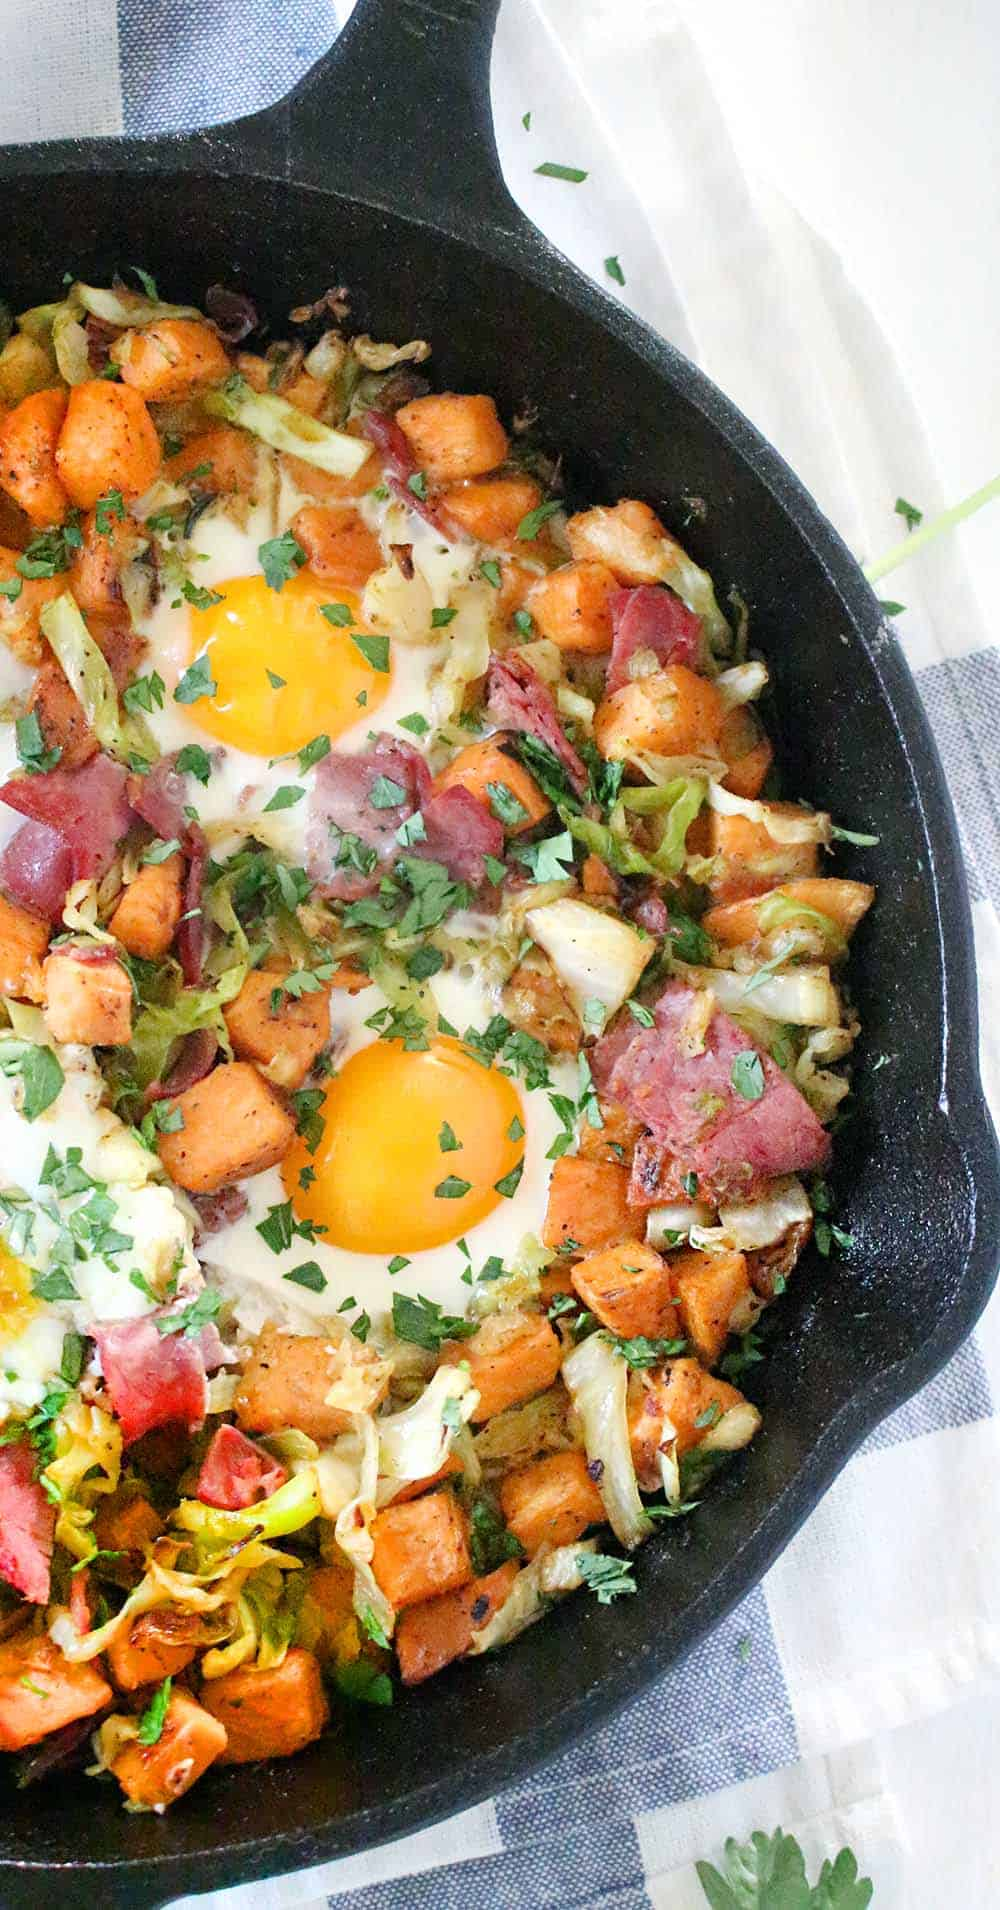 This four ingredient Sweet Potato, Corned Beef, and Cabbage Breakfast Bake is low-carb, gluten-free, and paleo friendly! Start your day with this delicious, nutrient-packed recipe.